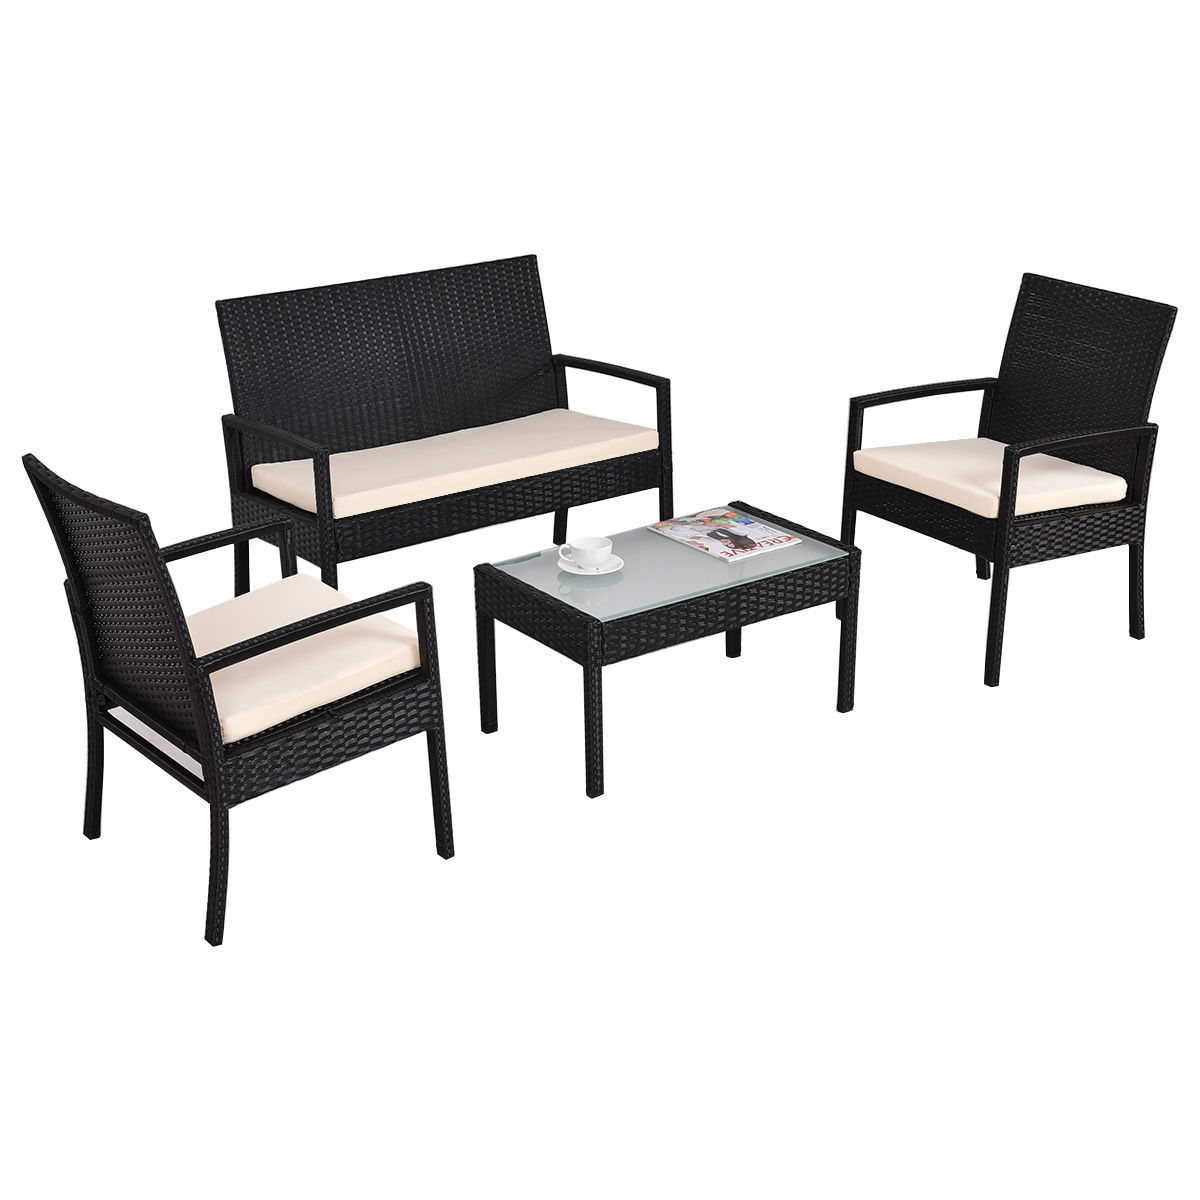 Costway 4 PCS Outdoor Patio Furniture Set Table Chair Sofa Cushioned Seat Garden  sc 1 st  Walmart & Costway 4 PCS Outdoor Patio Furniture Set Table Chair Sofa Cushioned ...